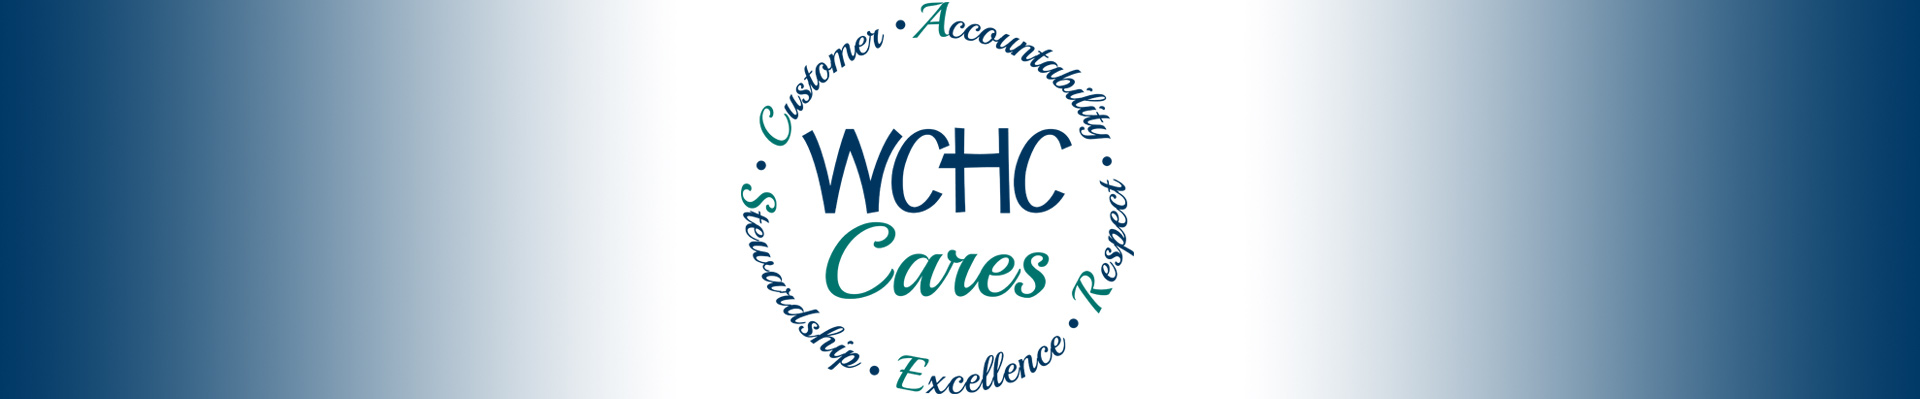 WCHC CARES